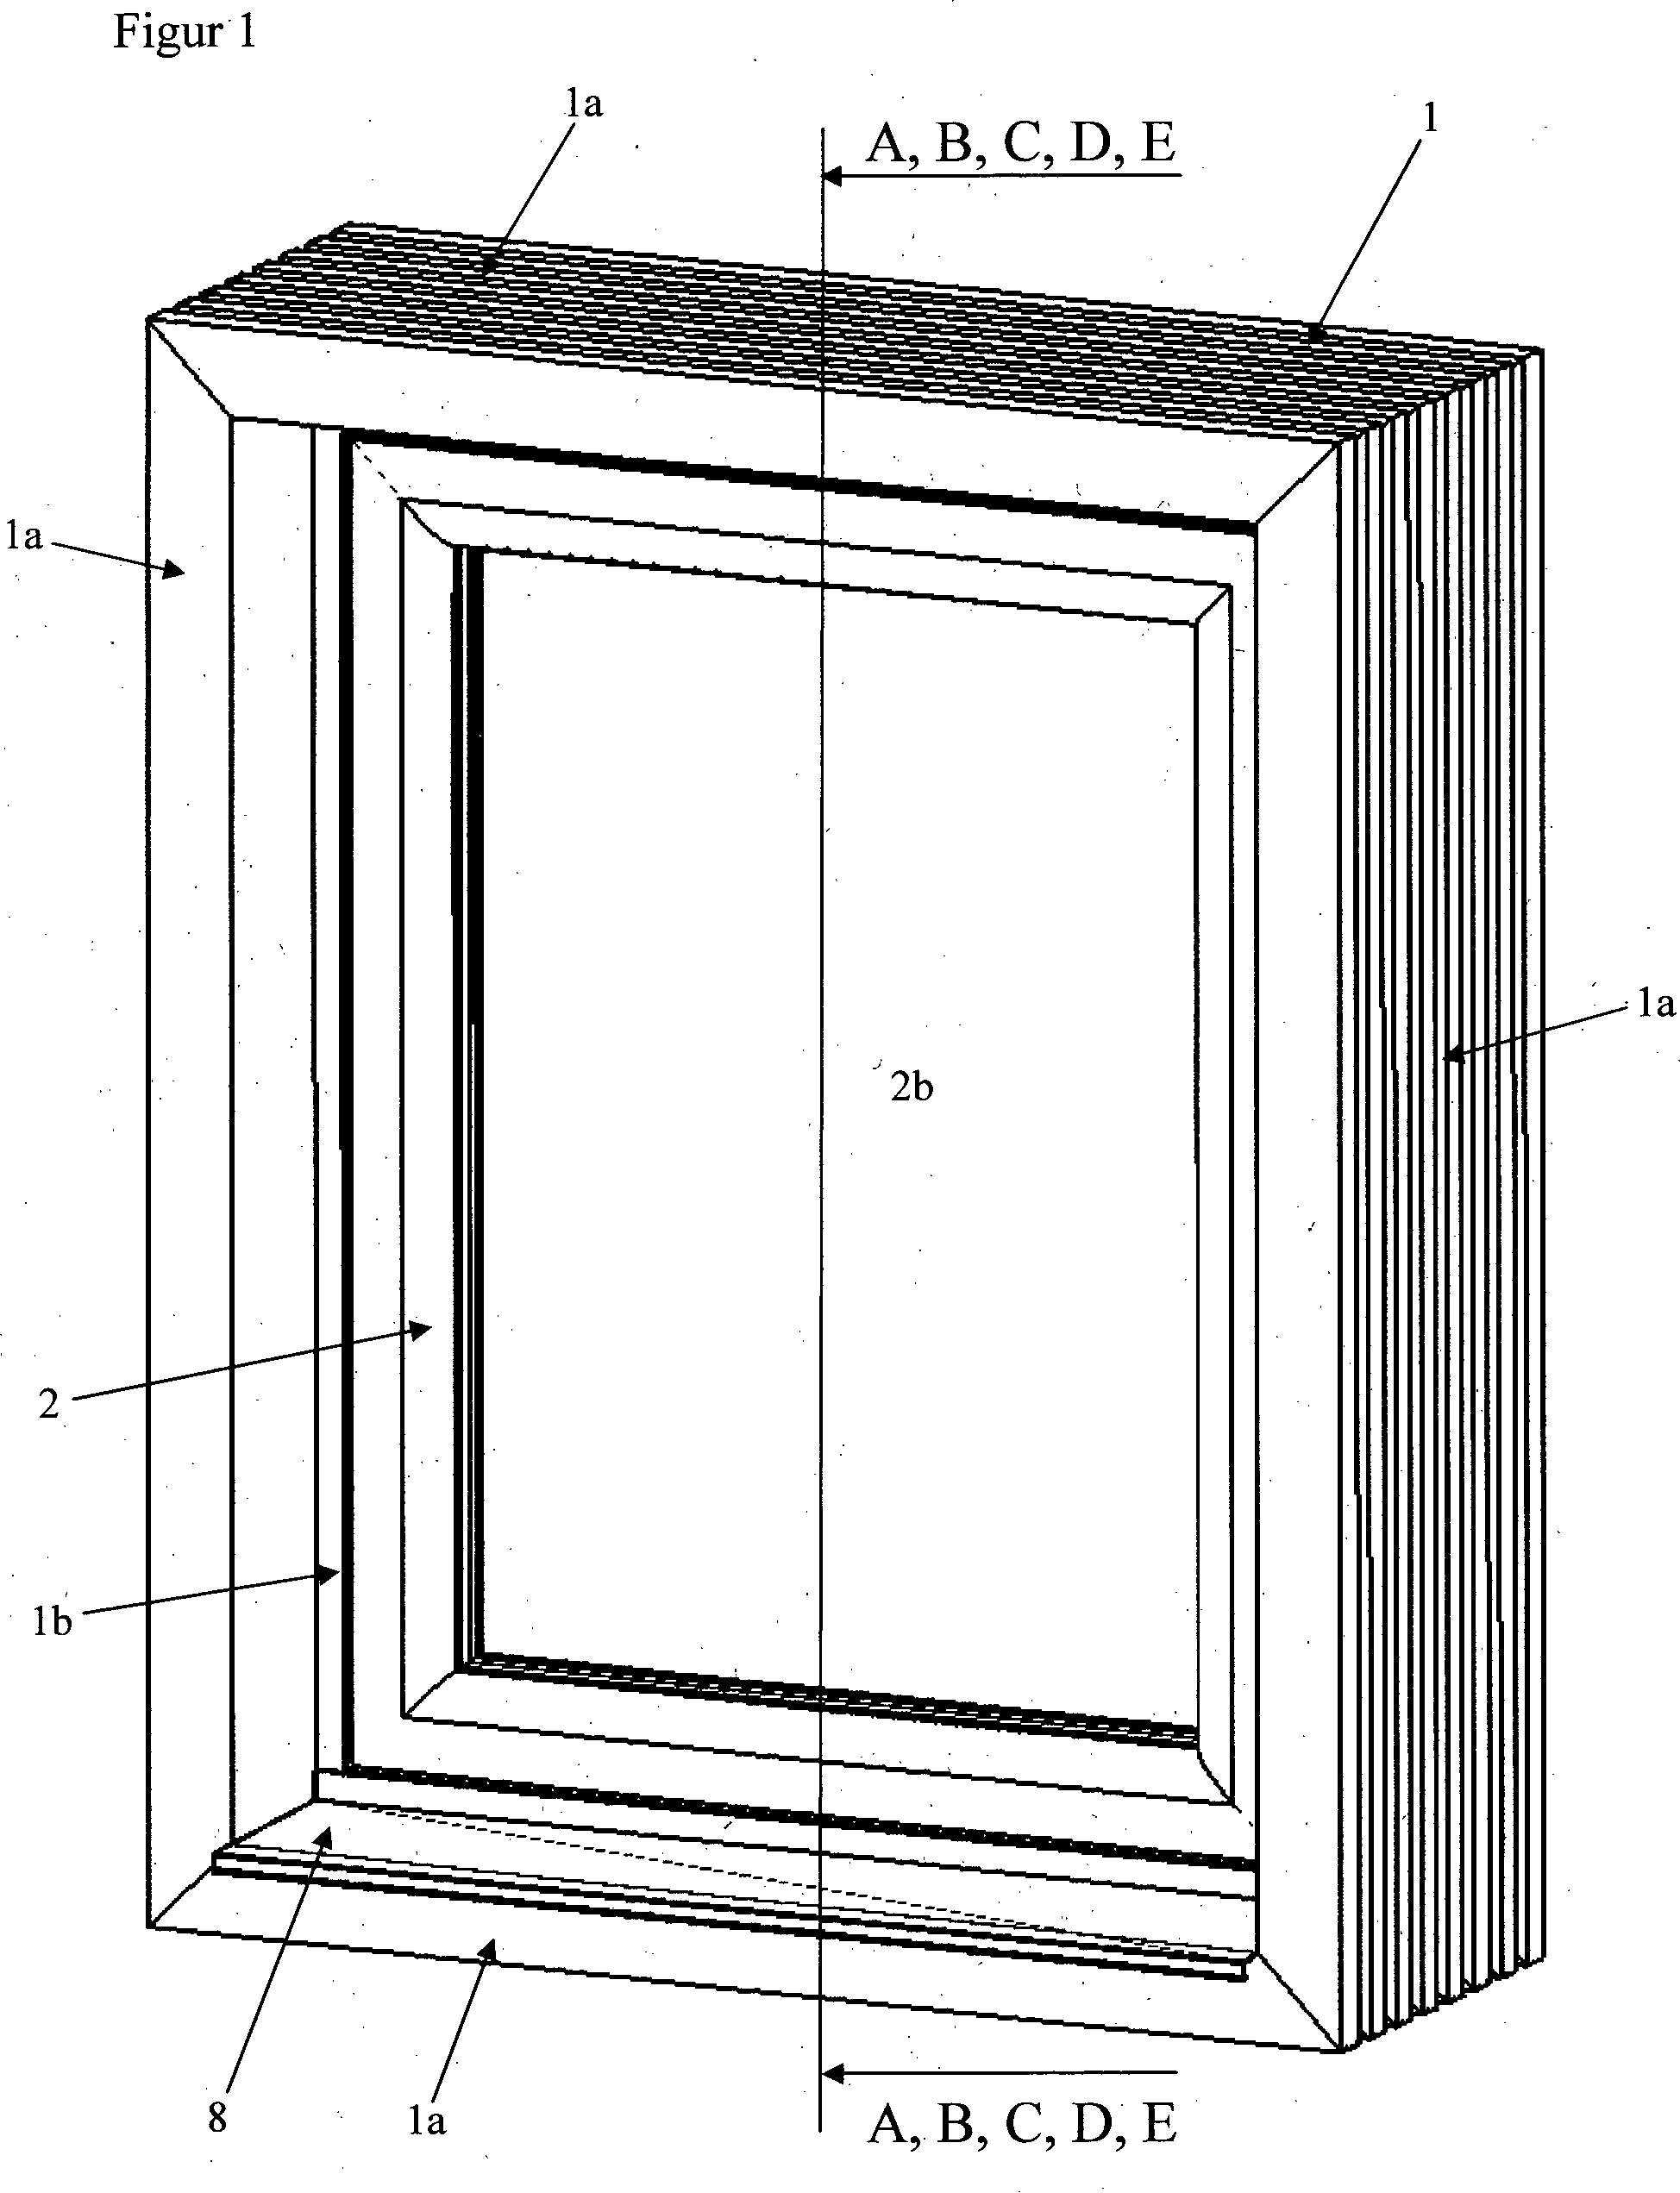 patent de102010004254a1 fenster t r oder glaselement mit hochged mmten blendrahmen sowie. Black Bedroom Furniture Sets. Home Design Ideas